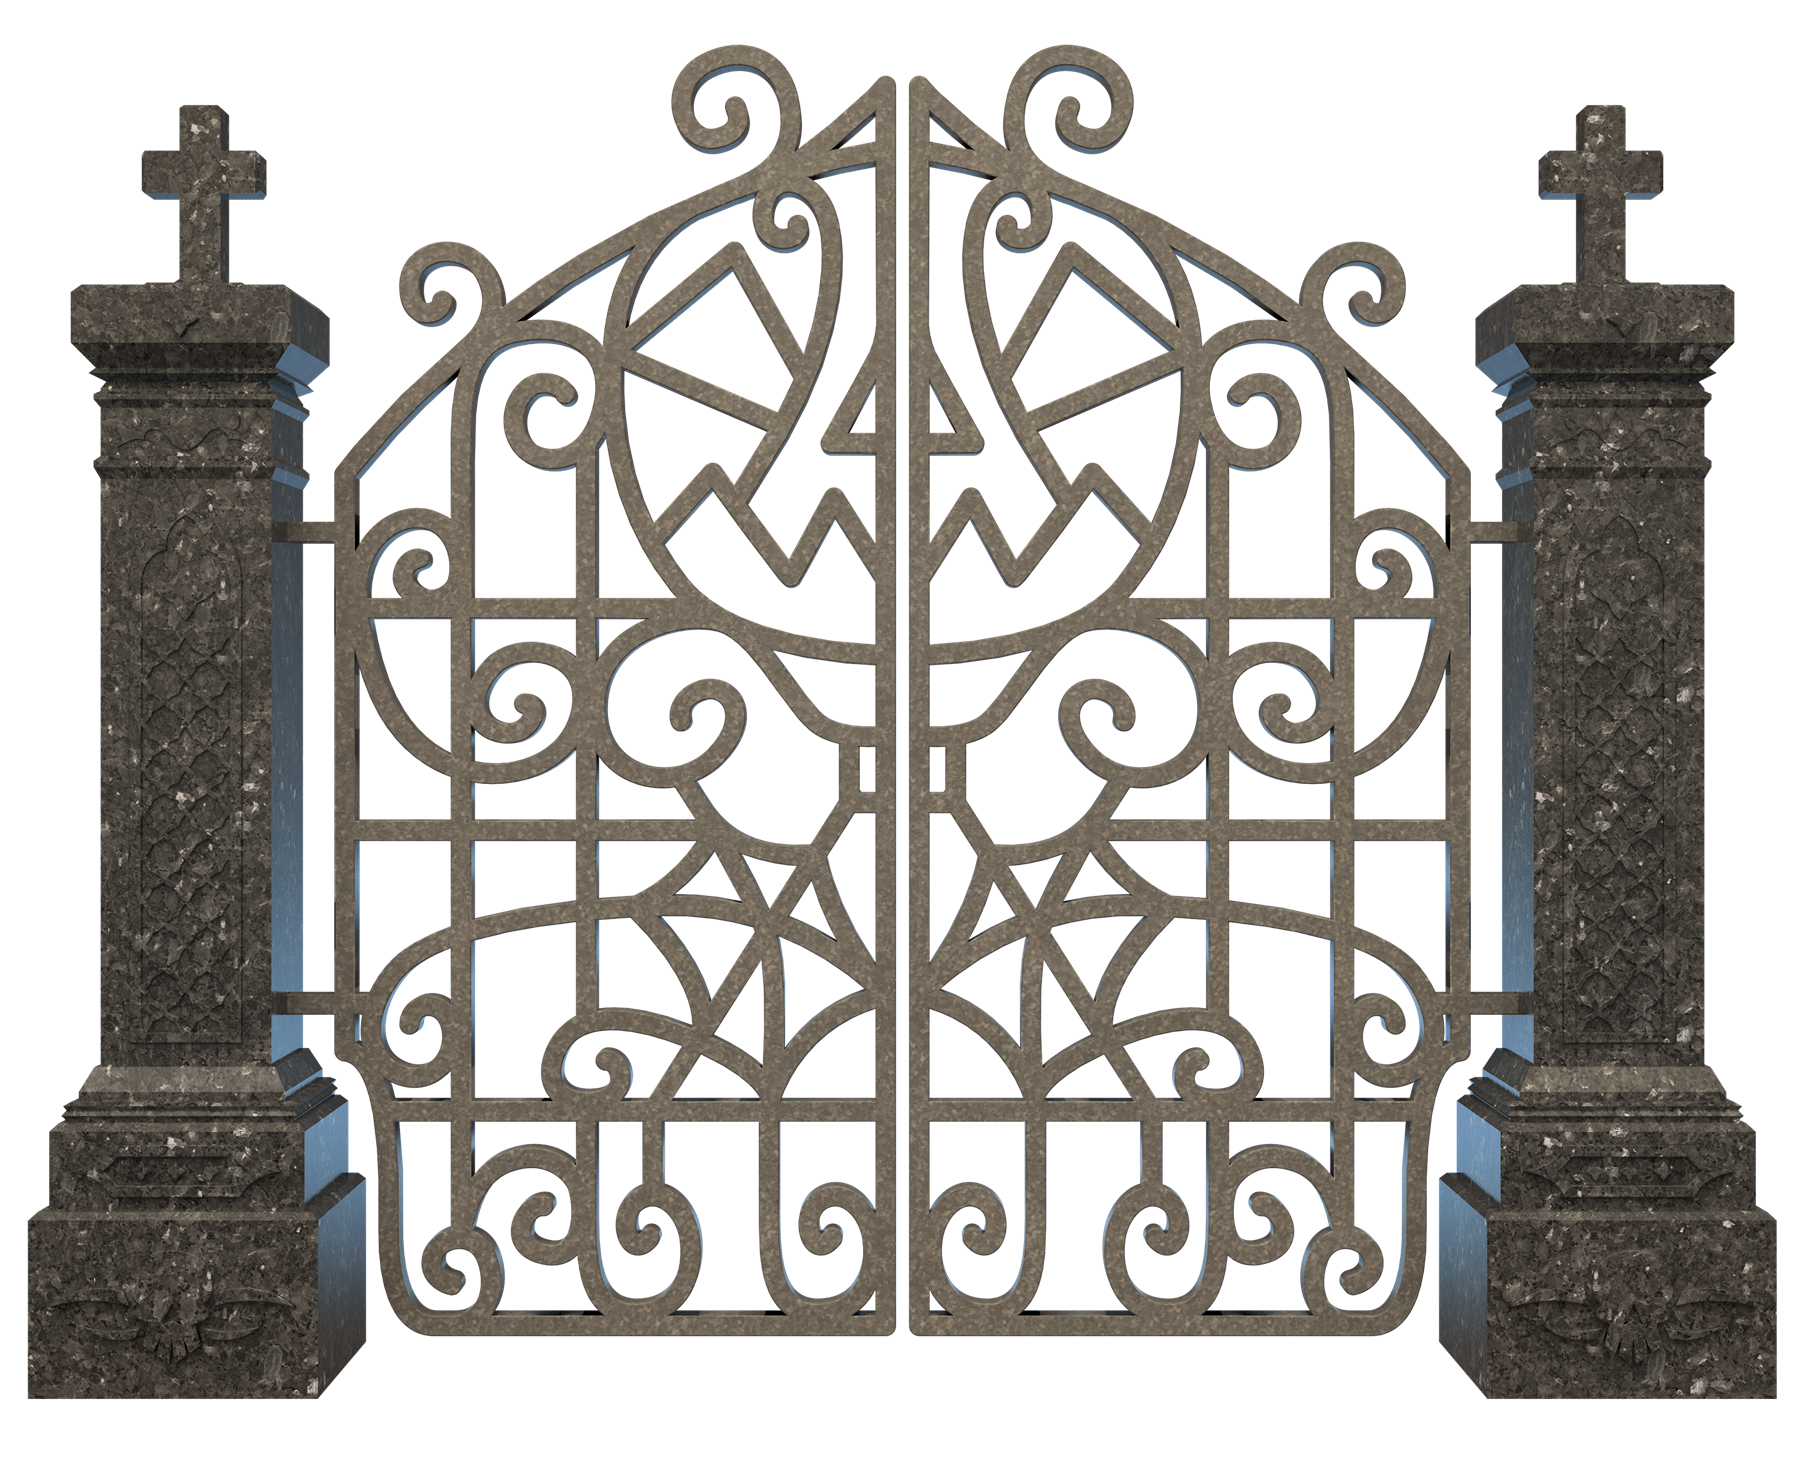 Png images transparent free. Gate clipart boundary